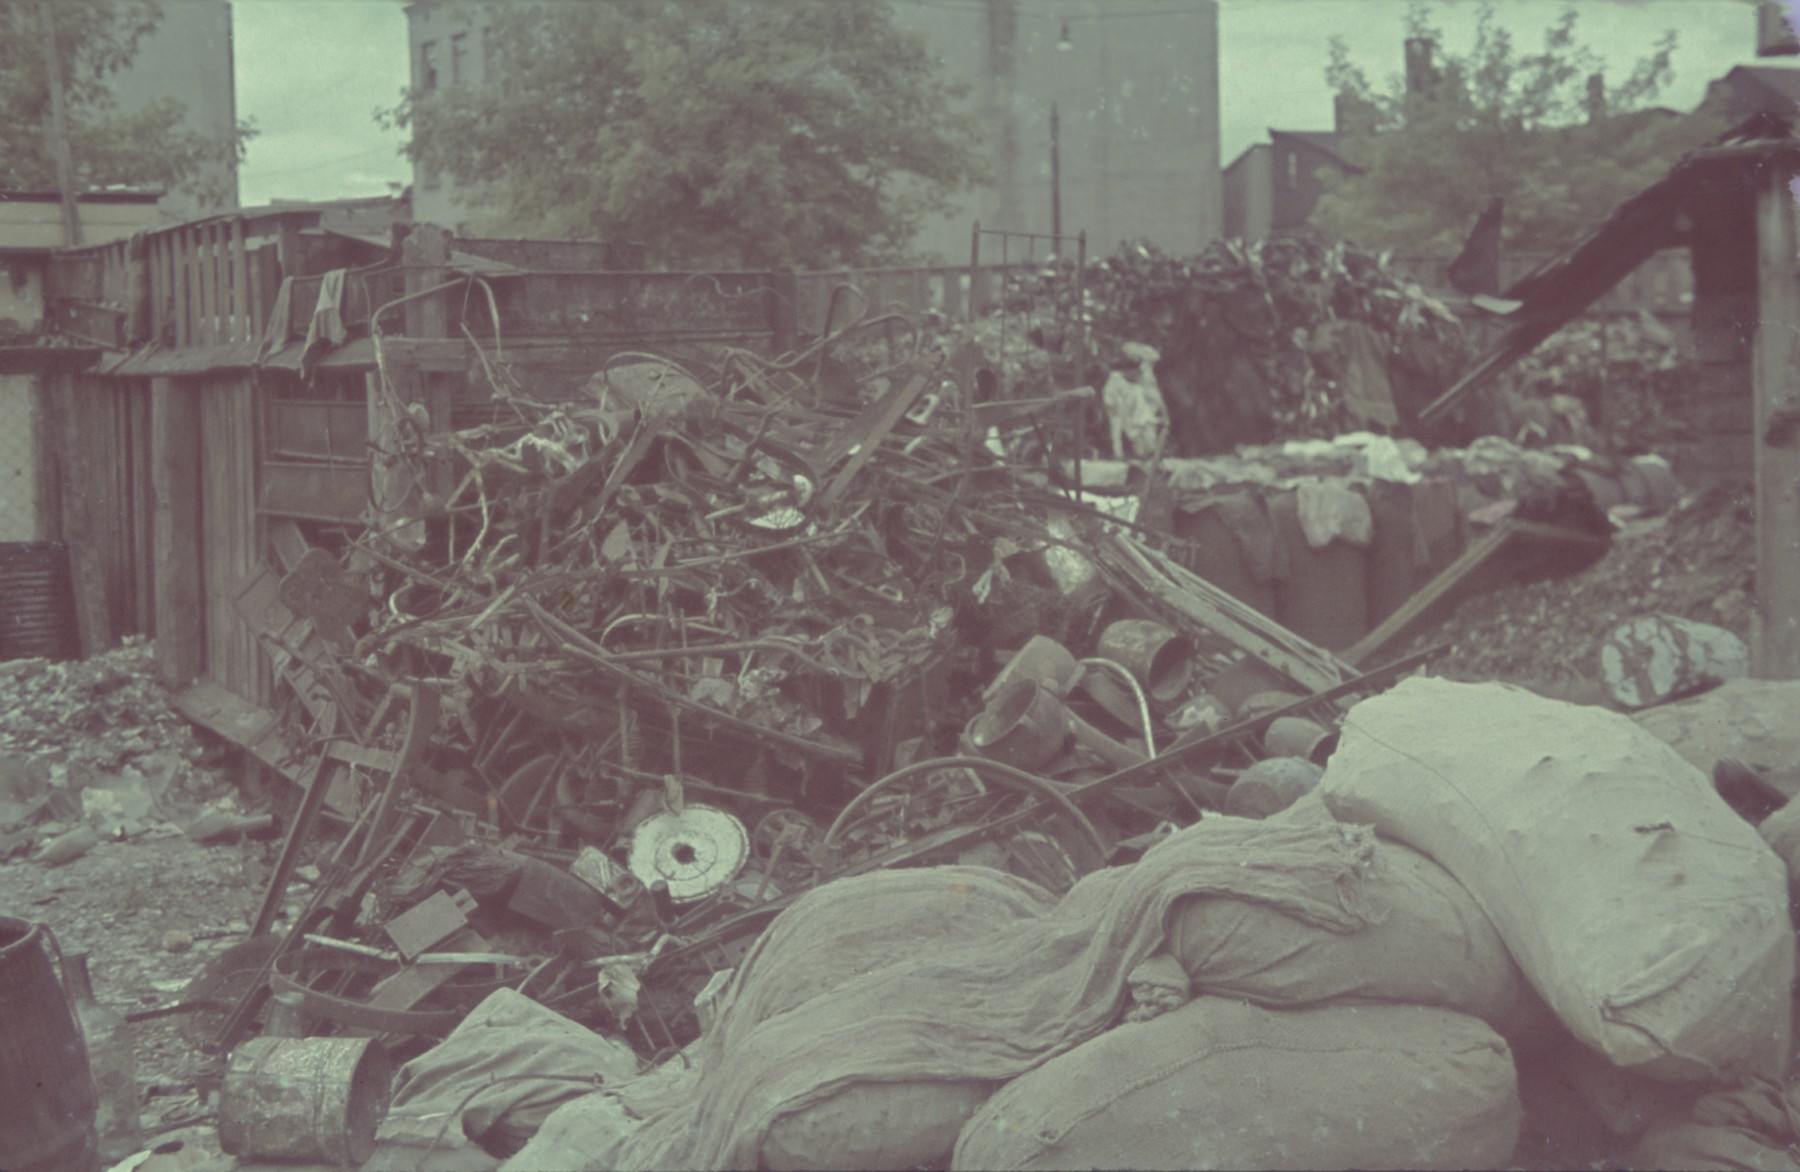 "Large pile of debris in the Lodz ghetto.  Original German caption: ""Litzmannstadt-getto, Altmaterial Lager"" (old material warehouse), #23."